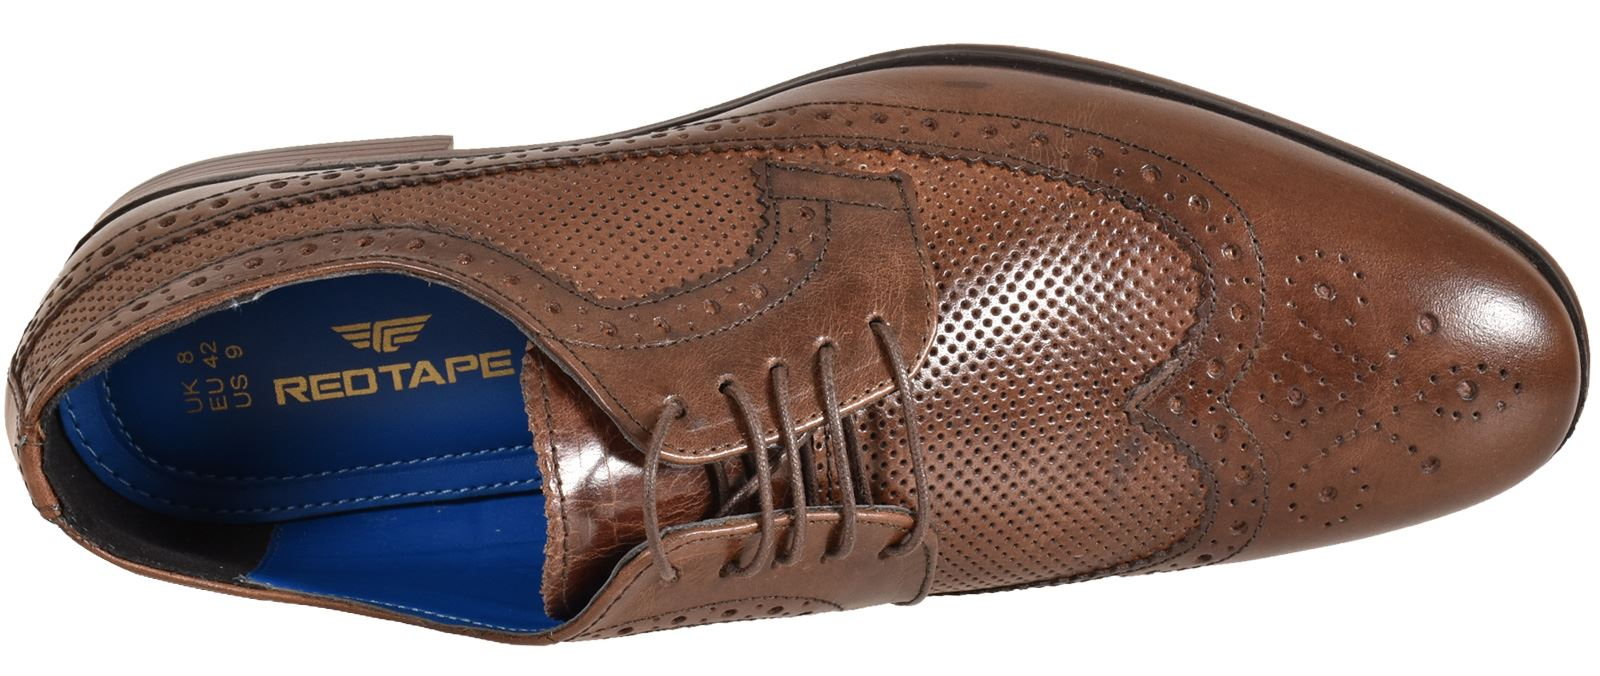 Mens-UK-Style-Leather-Lining-Formal-Office-Wedding-Smart-Work-Brogue-Shoes thumbnail 107